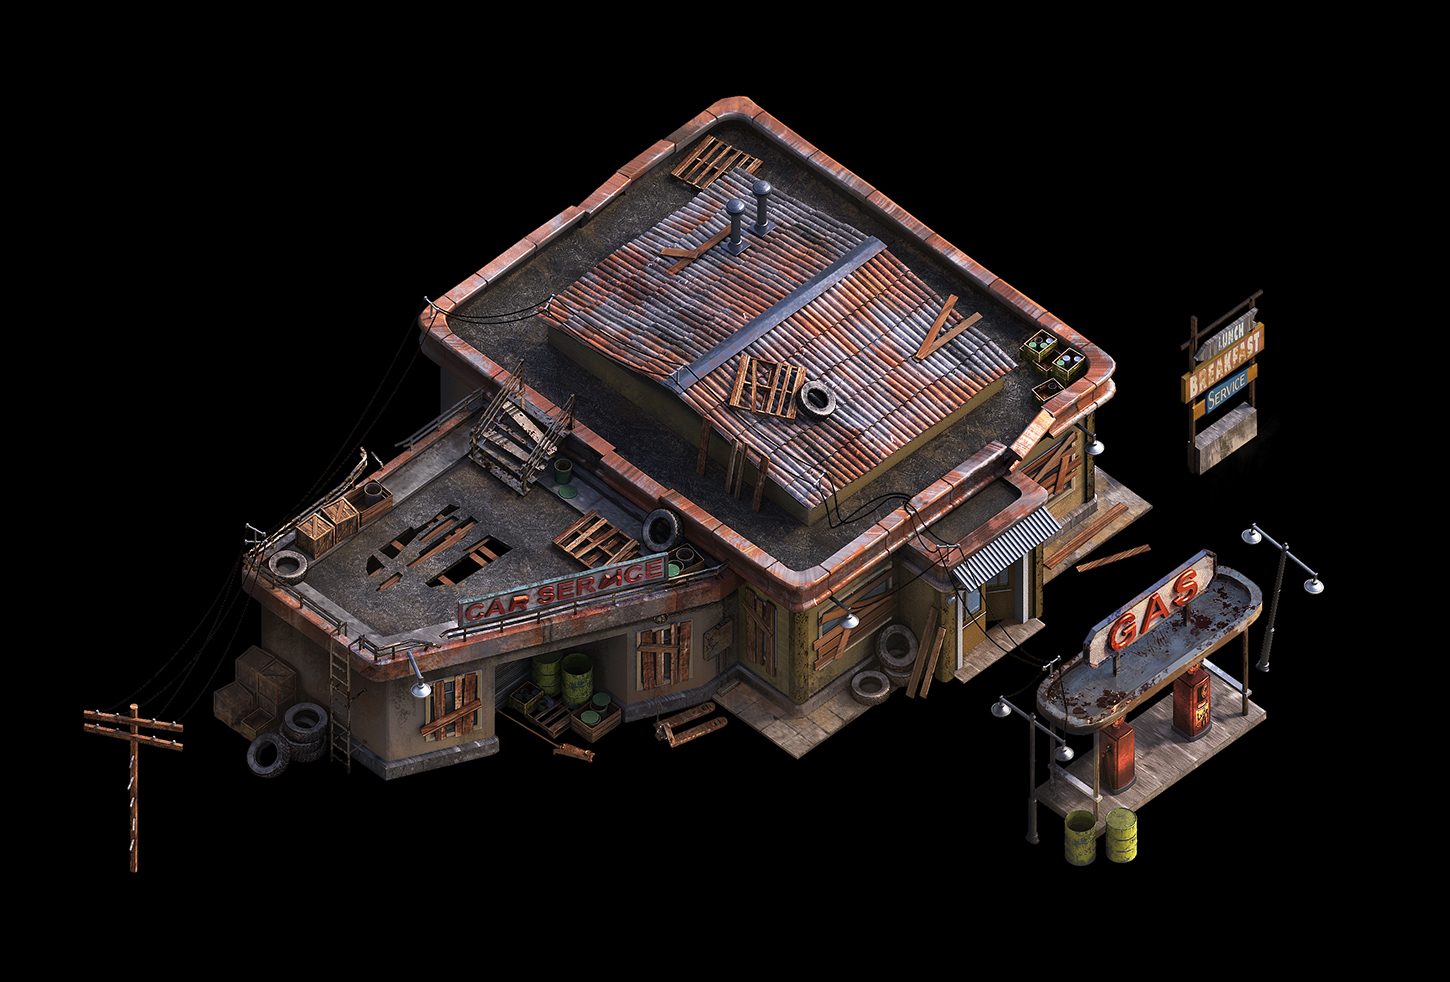 Gas_Station_01 | ✏️2D/3D Environment Artist PRG/Action/RTS/Moba/Isometric